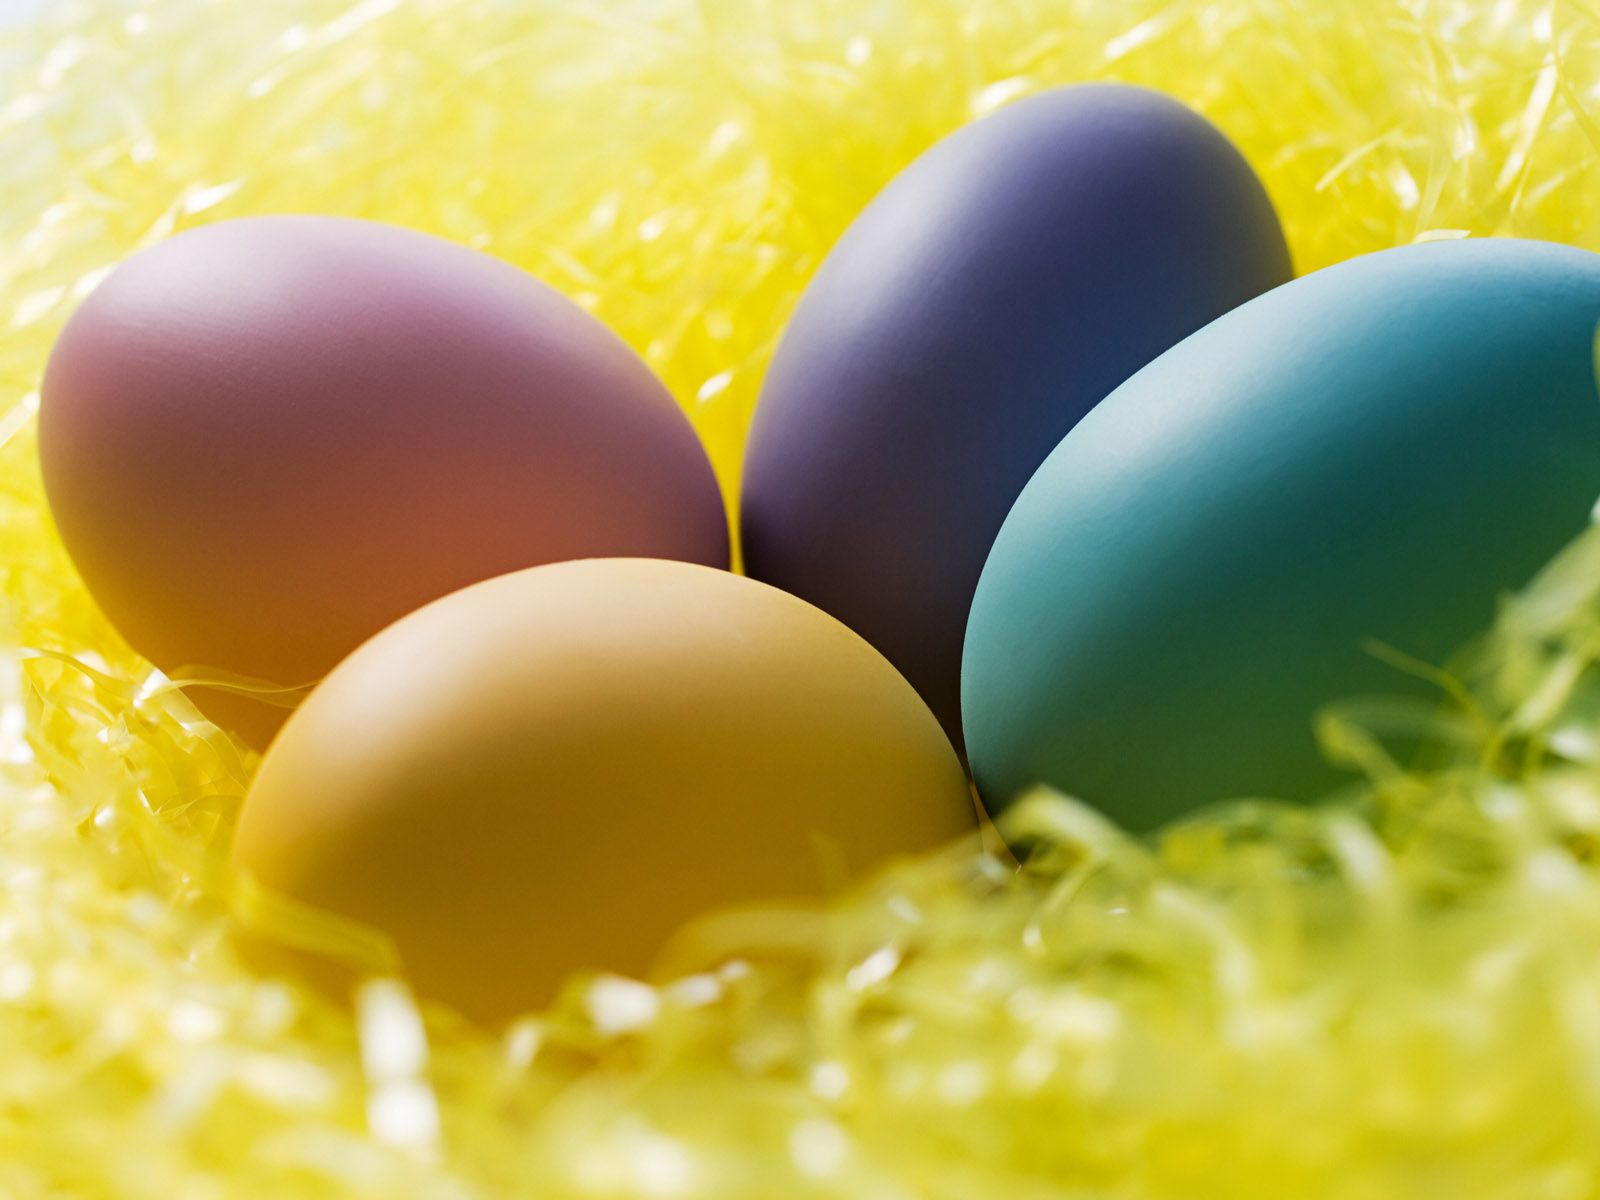 Chicks And Easter Eggs Wallpapers For Your Desktop Backgrounds